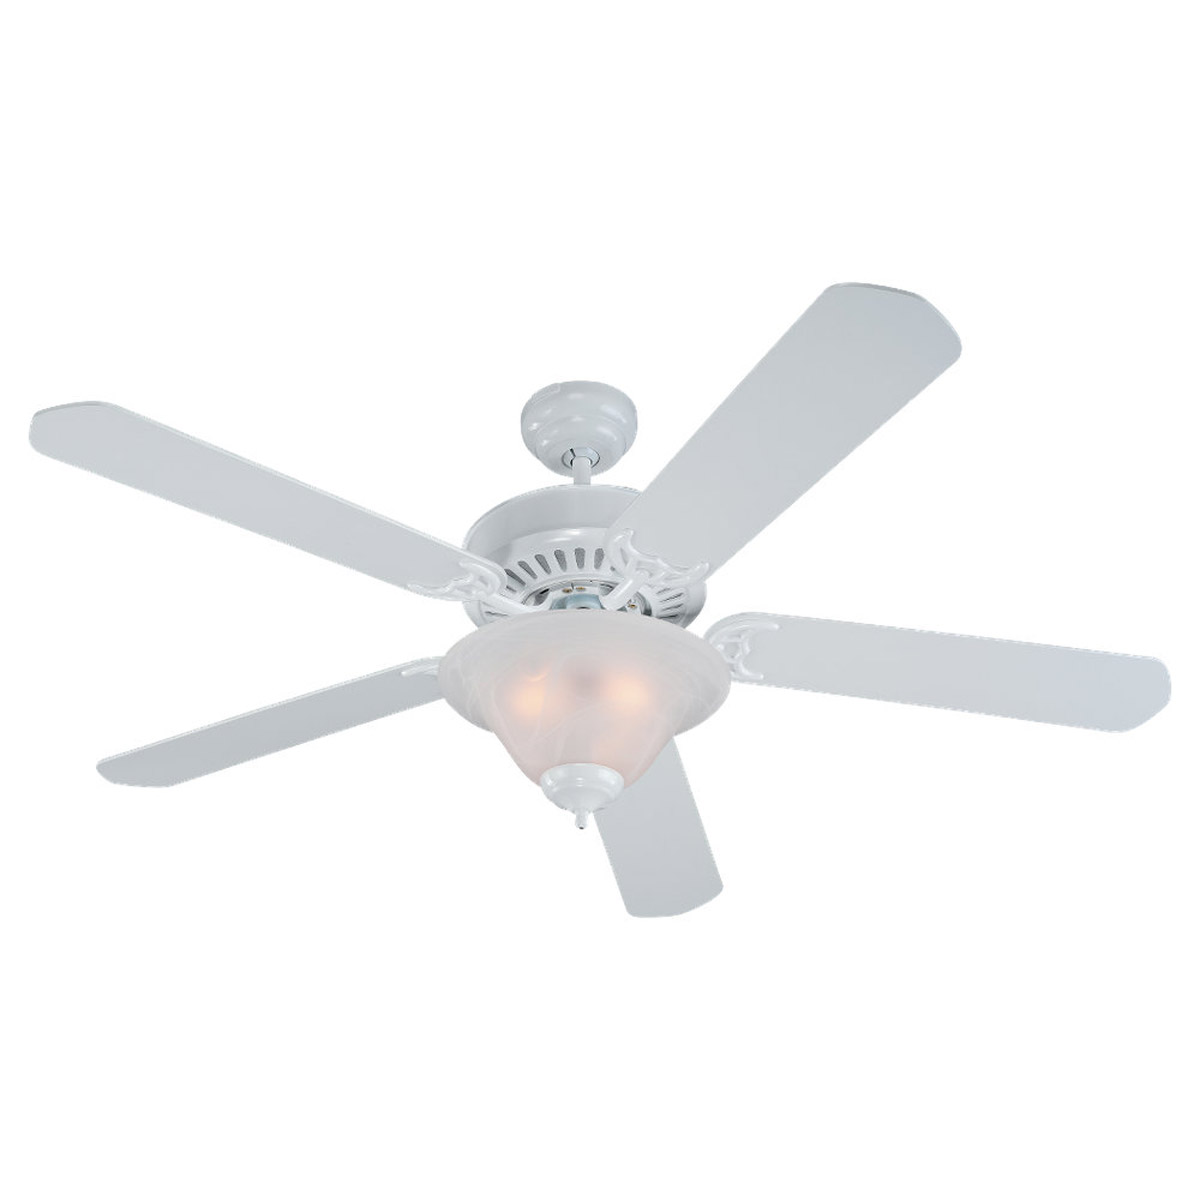 Sea Gull Lighting 3 Light 52in Quality Pro Deluxe Ceiling Fan in White 15162B-15